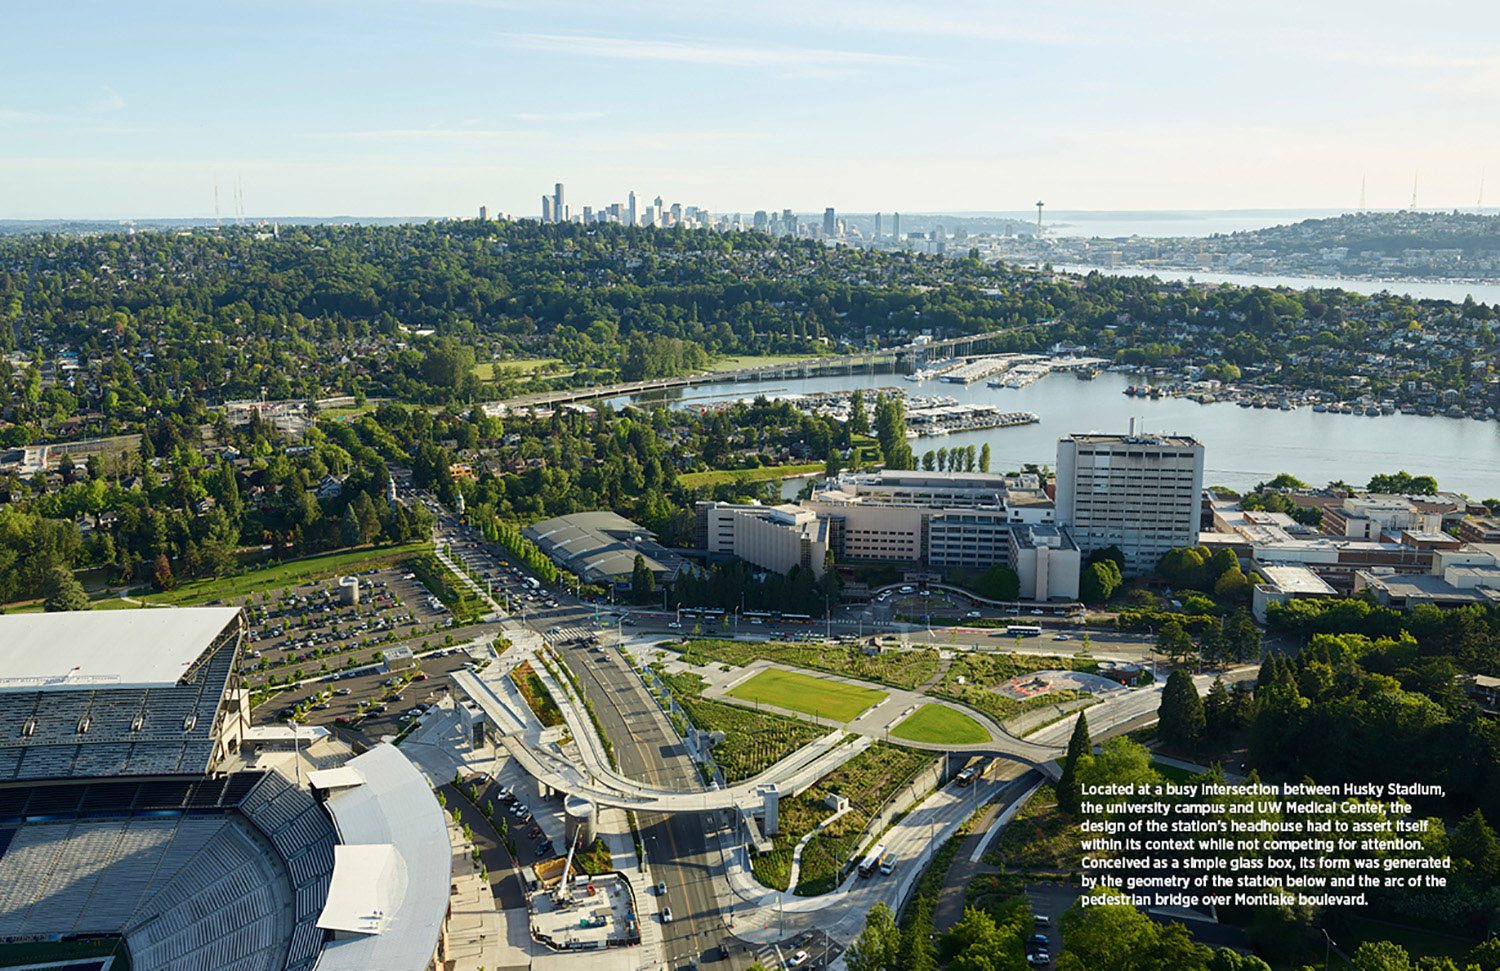 Located at a busy intersection between the university campus, Husky Stadium, and UW Medical Center, the design of the station's headhouse had to assert itself within its context while not competing for att Kevin Scott